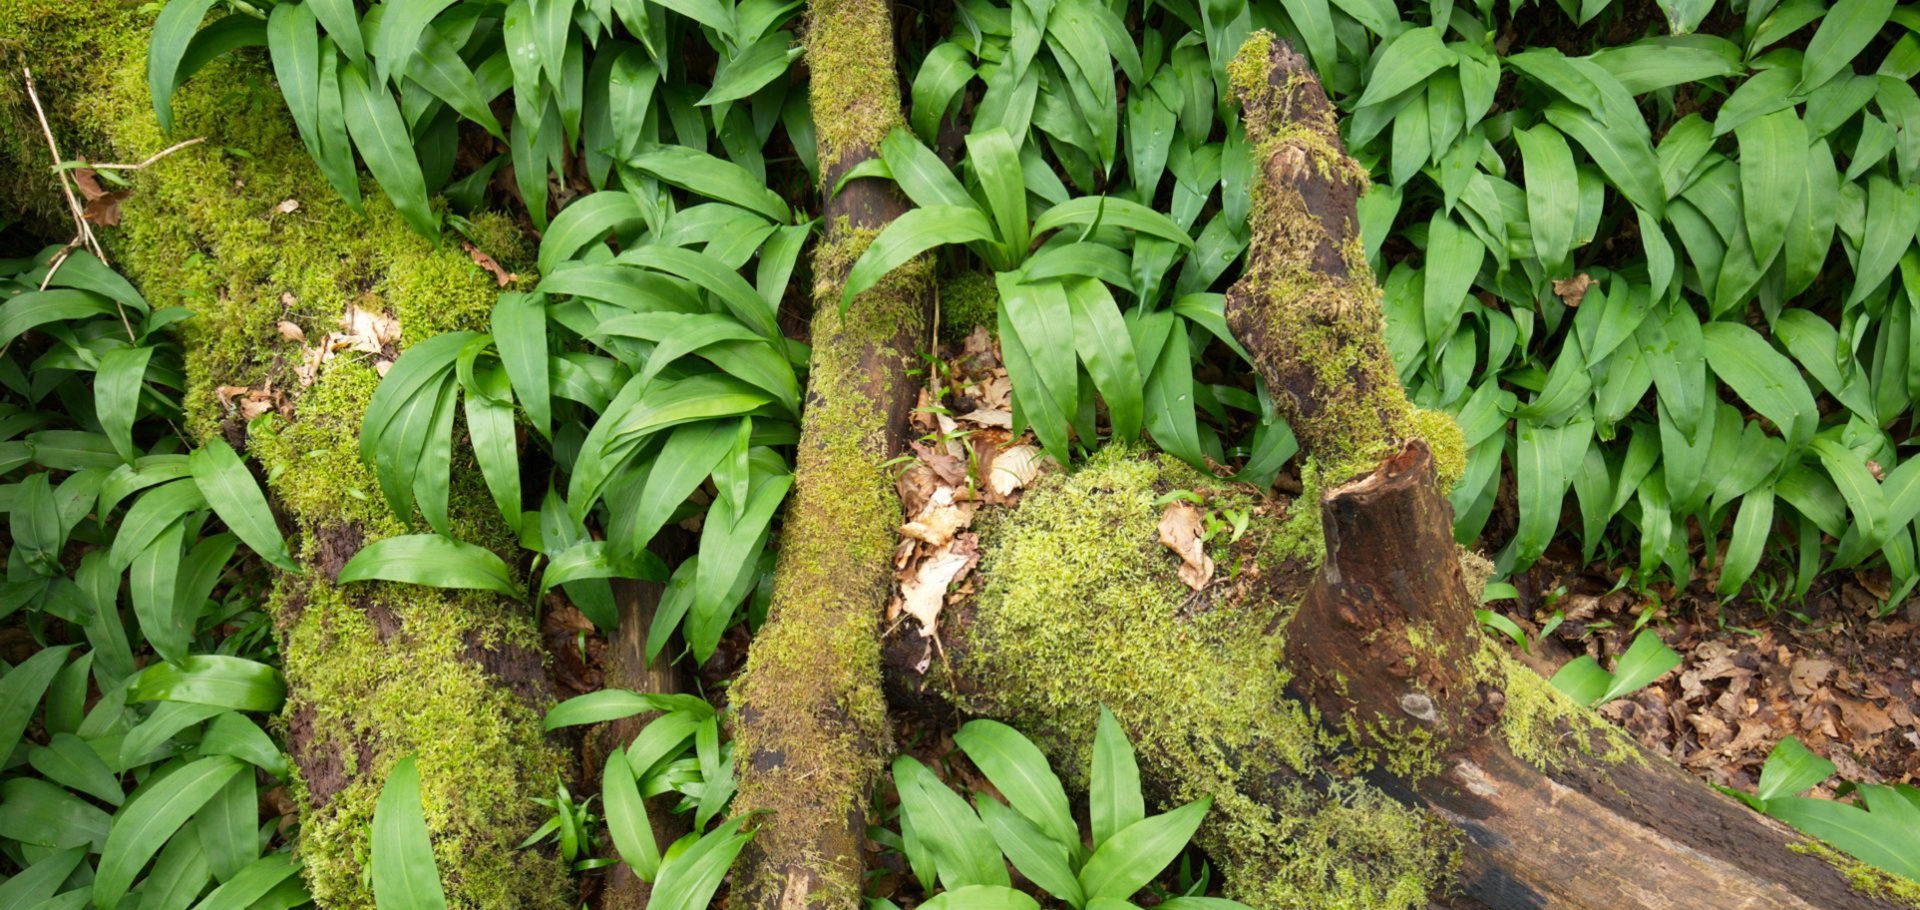 Wild garlic growing at Kirkennan Estate Holiday Cottages Dumfries and Galloway